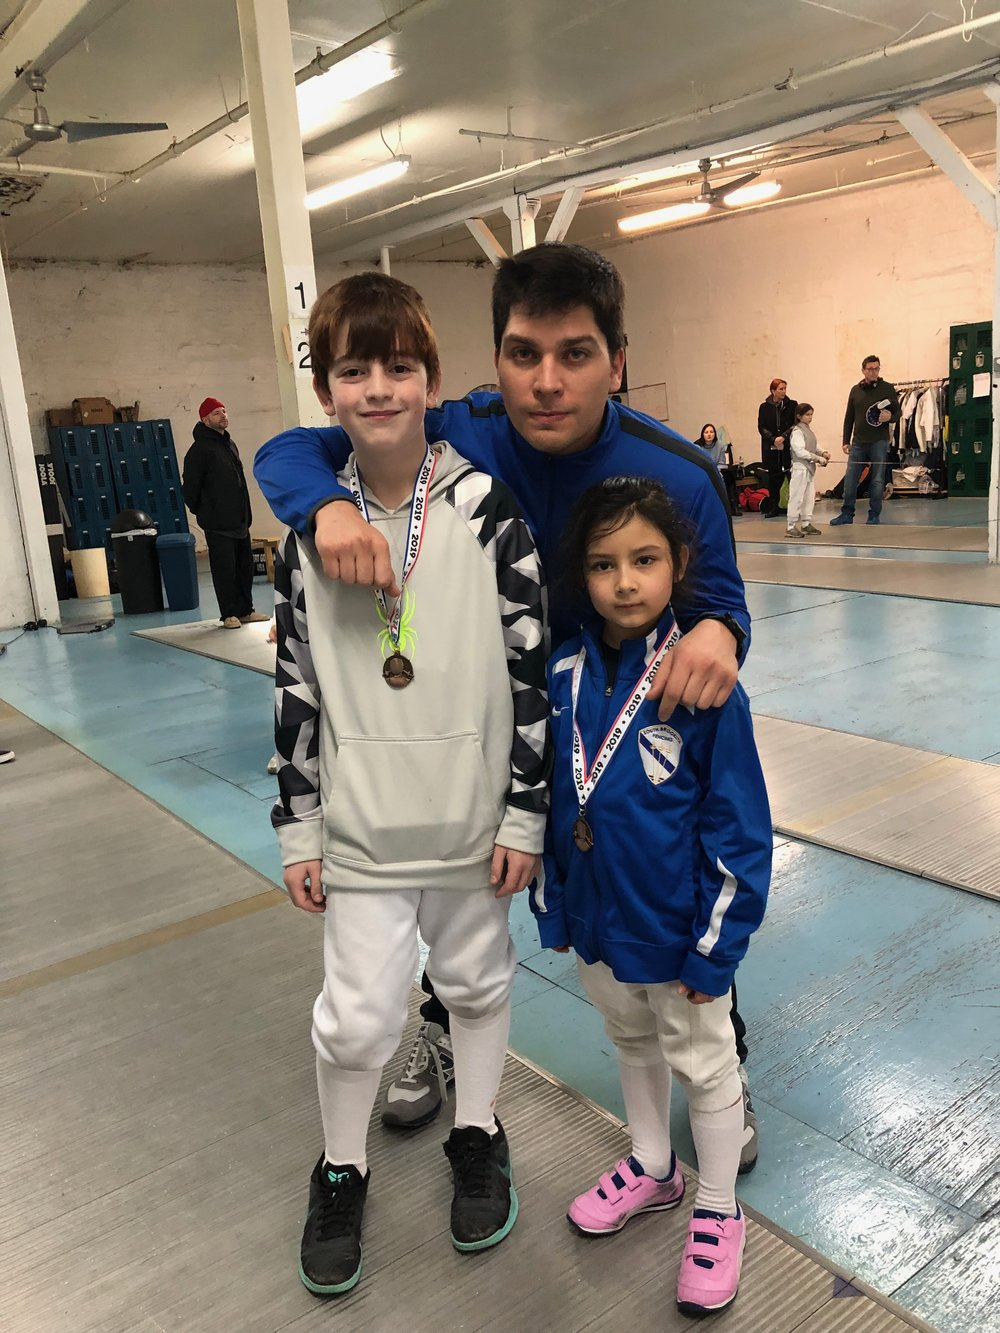 Brooklyn Youth Tournament  Emily Cascone 3rd place Y10 mixed Robert Gofman 5th place Y10 mixed  January 13th 2019